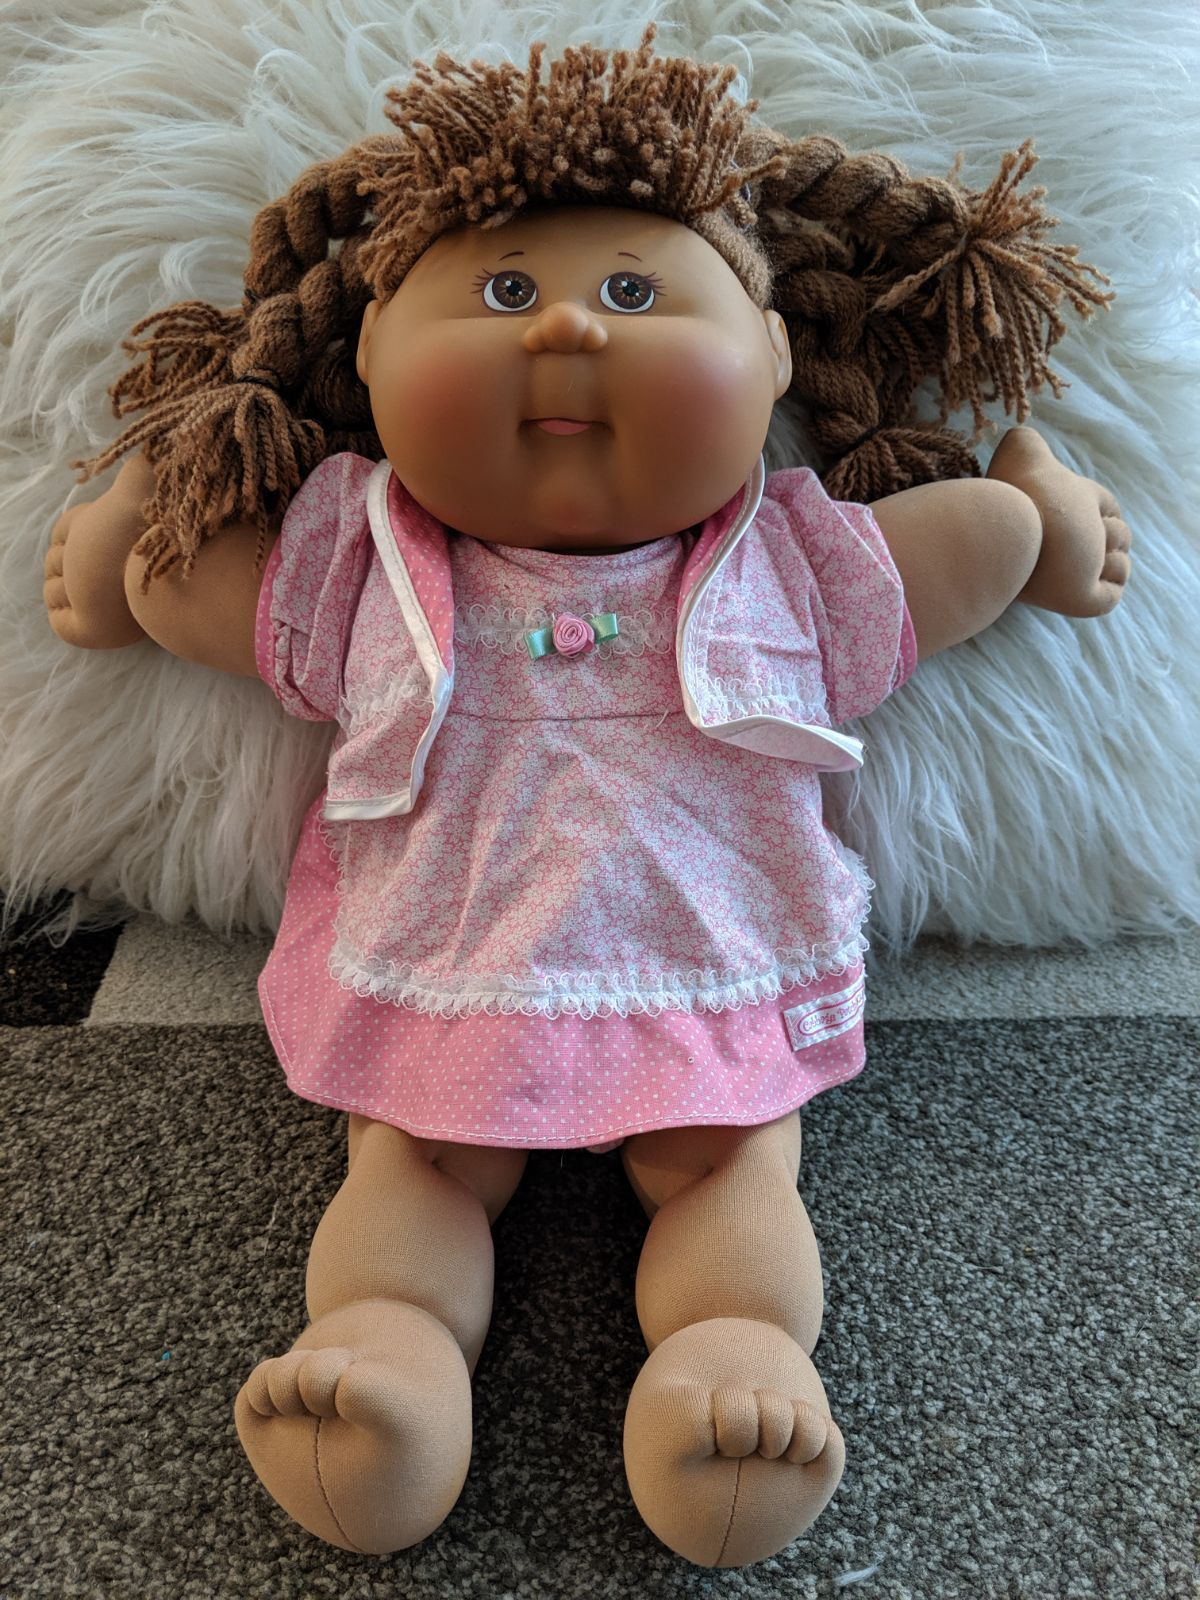 Cabbage Patch Kid Doll Measures About 16 1 2 Inches Light Brown Hair Brown Eyes Light Brow Cabbage Patch Kids Dolls Cabbage Patch Kids Cabbage Patch Babies